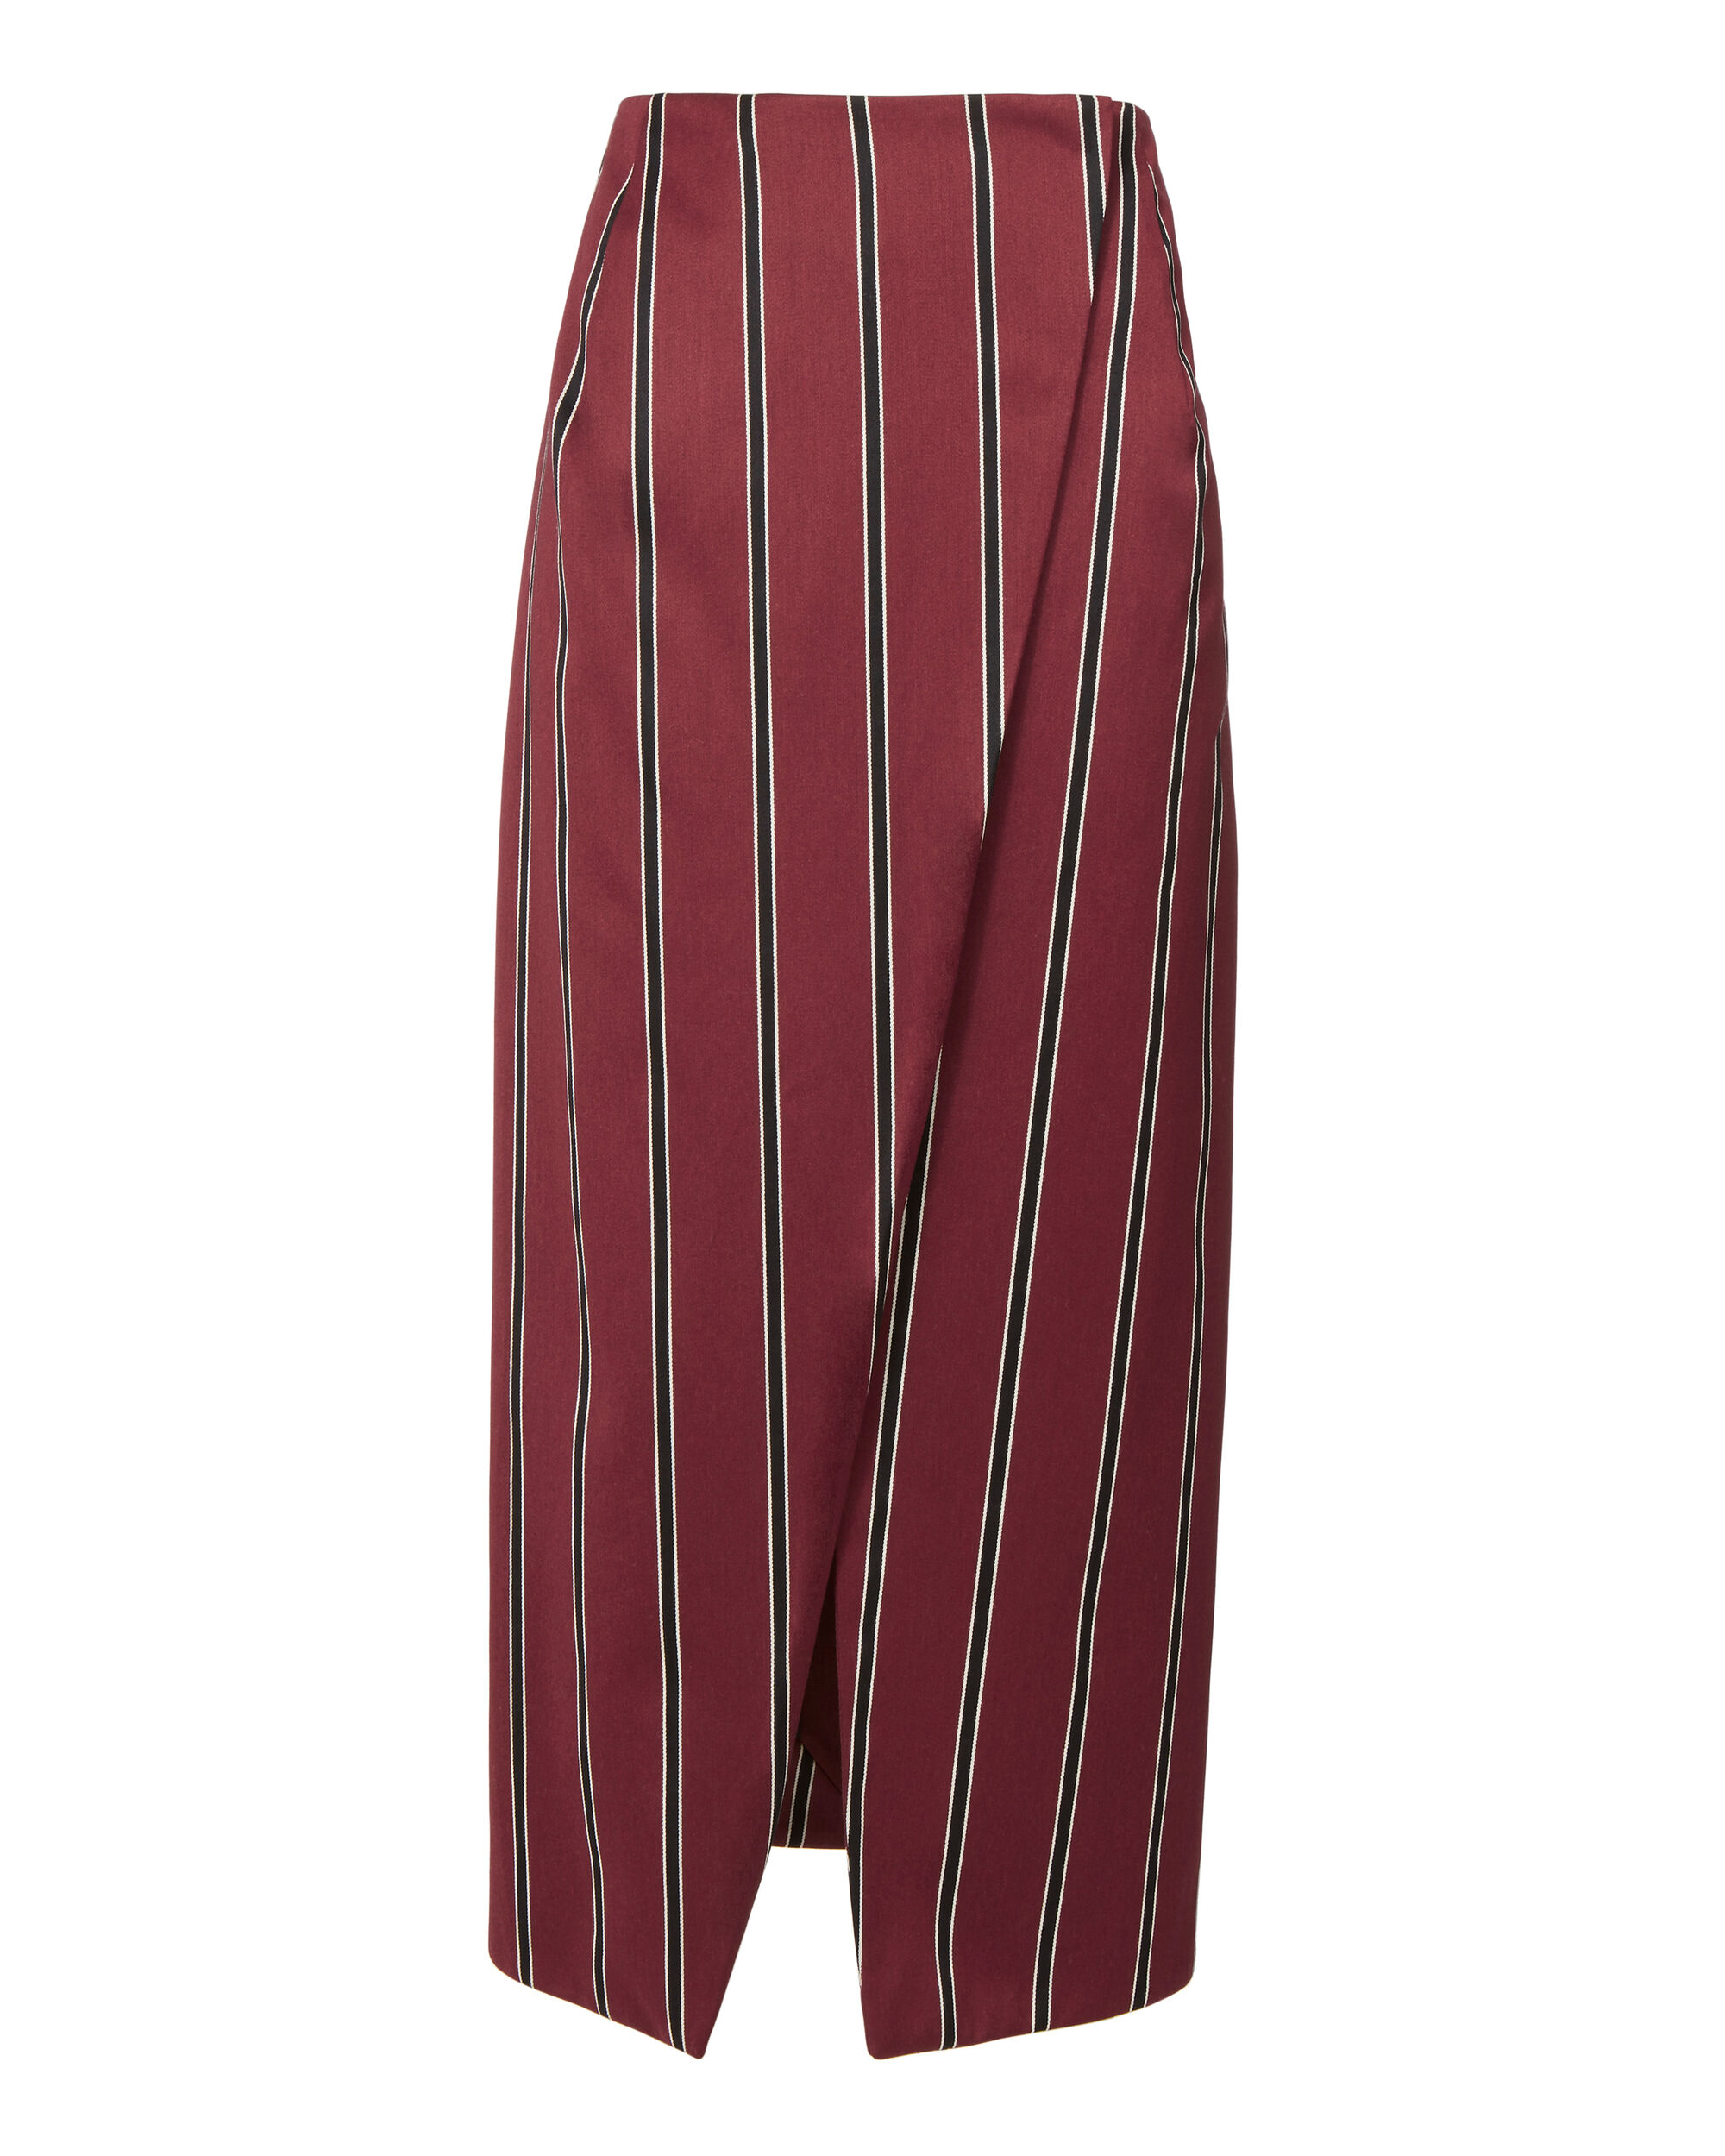 Apolline Stripe Wrap Skirt, RED-DRK, hi-res